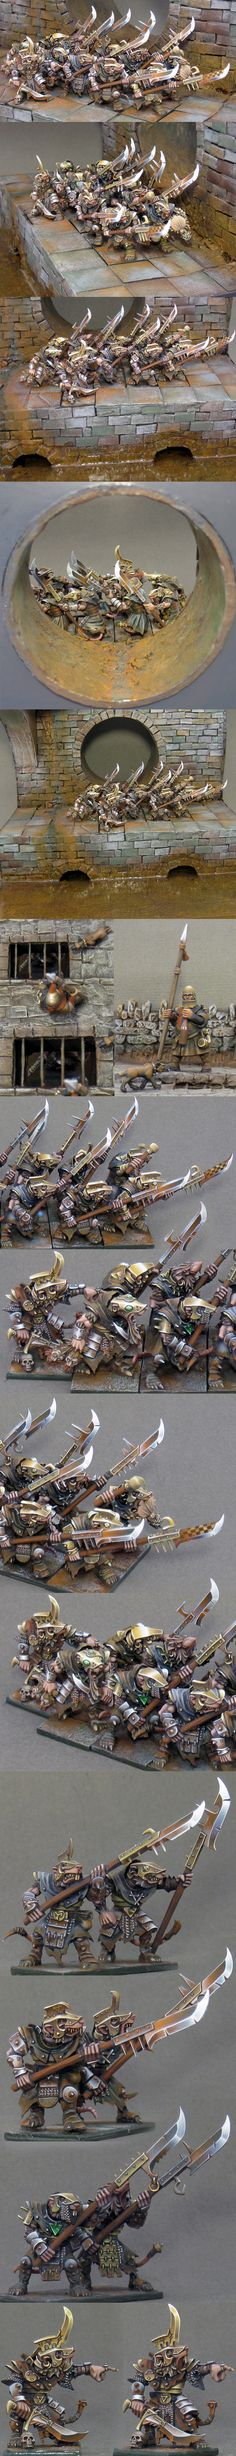 This is just my imagination... (skaven stormvermin). Great double NMM silver and gold blends together so well.